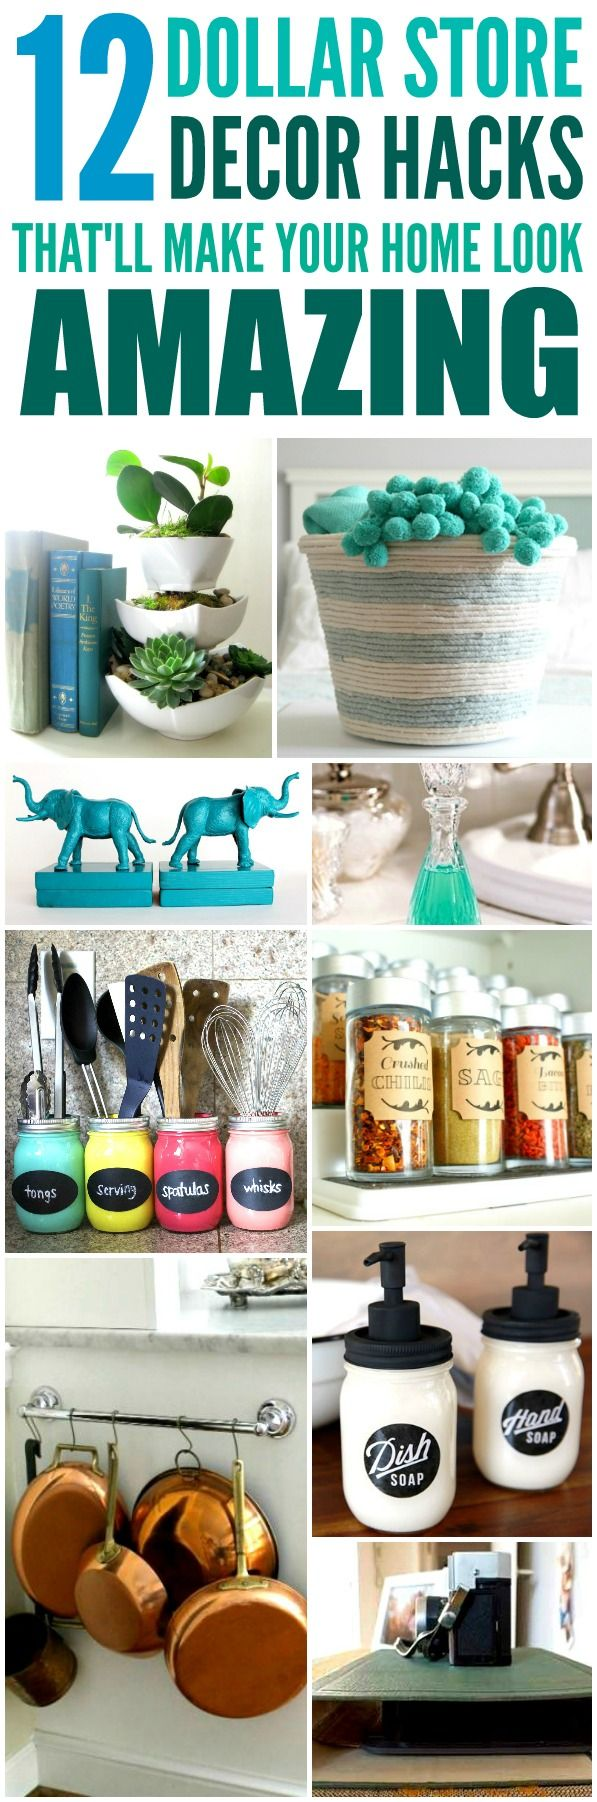 These 12 Dollar Store Decor Hacks are THE BEST! I'm so glad I found these AMAZIN...